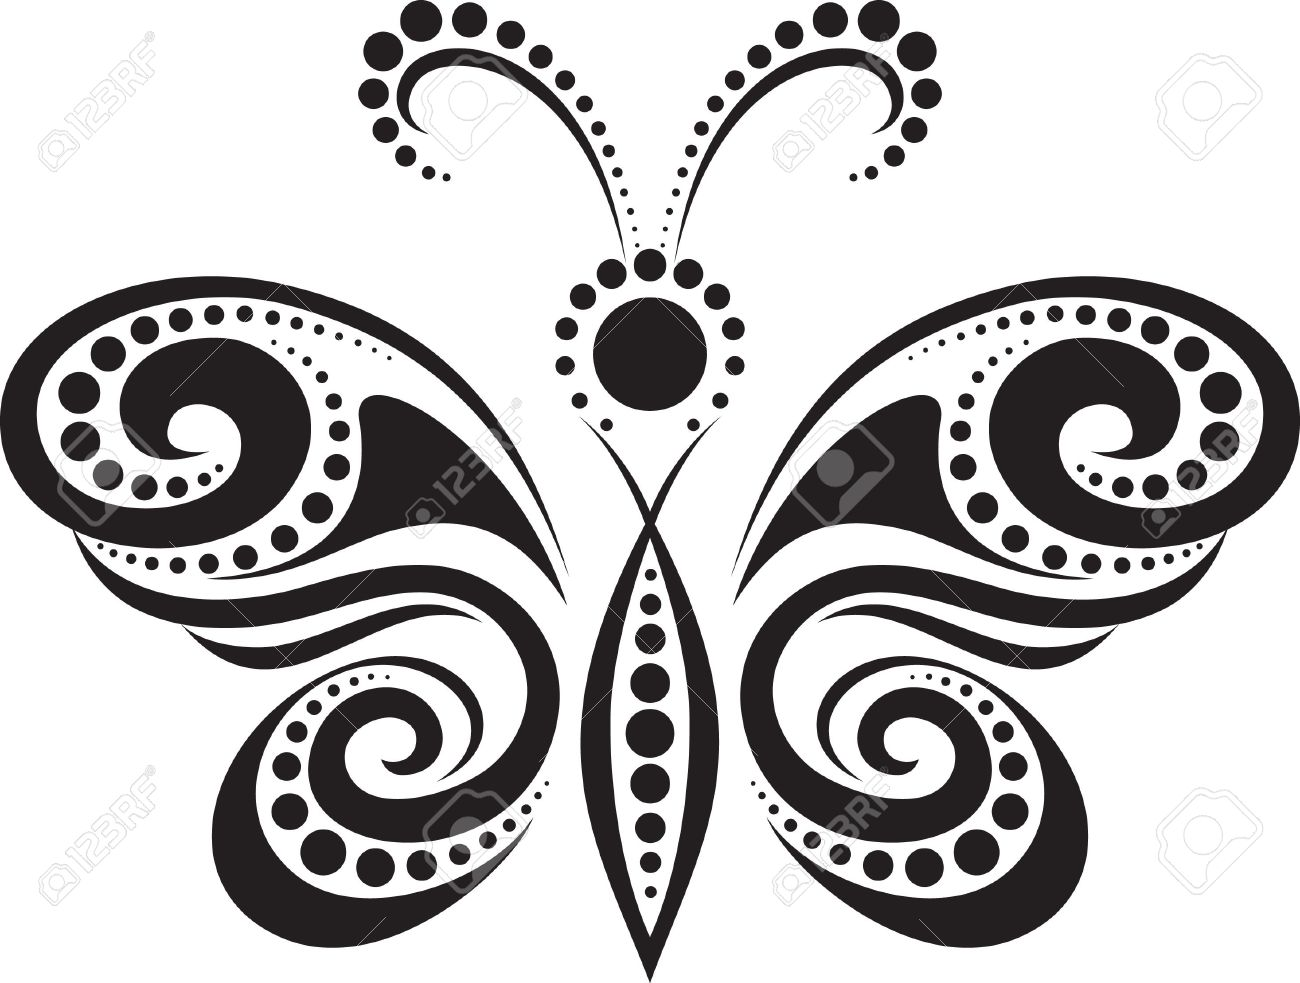 silhouette of a butterfly from the lines and points royalty free